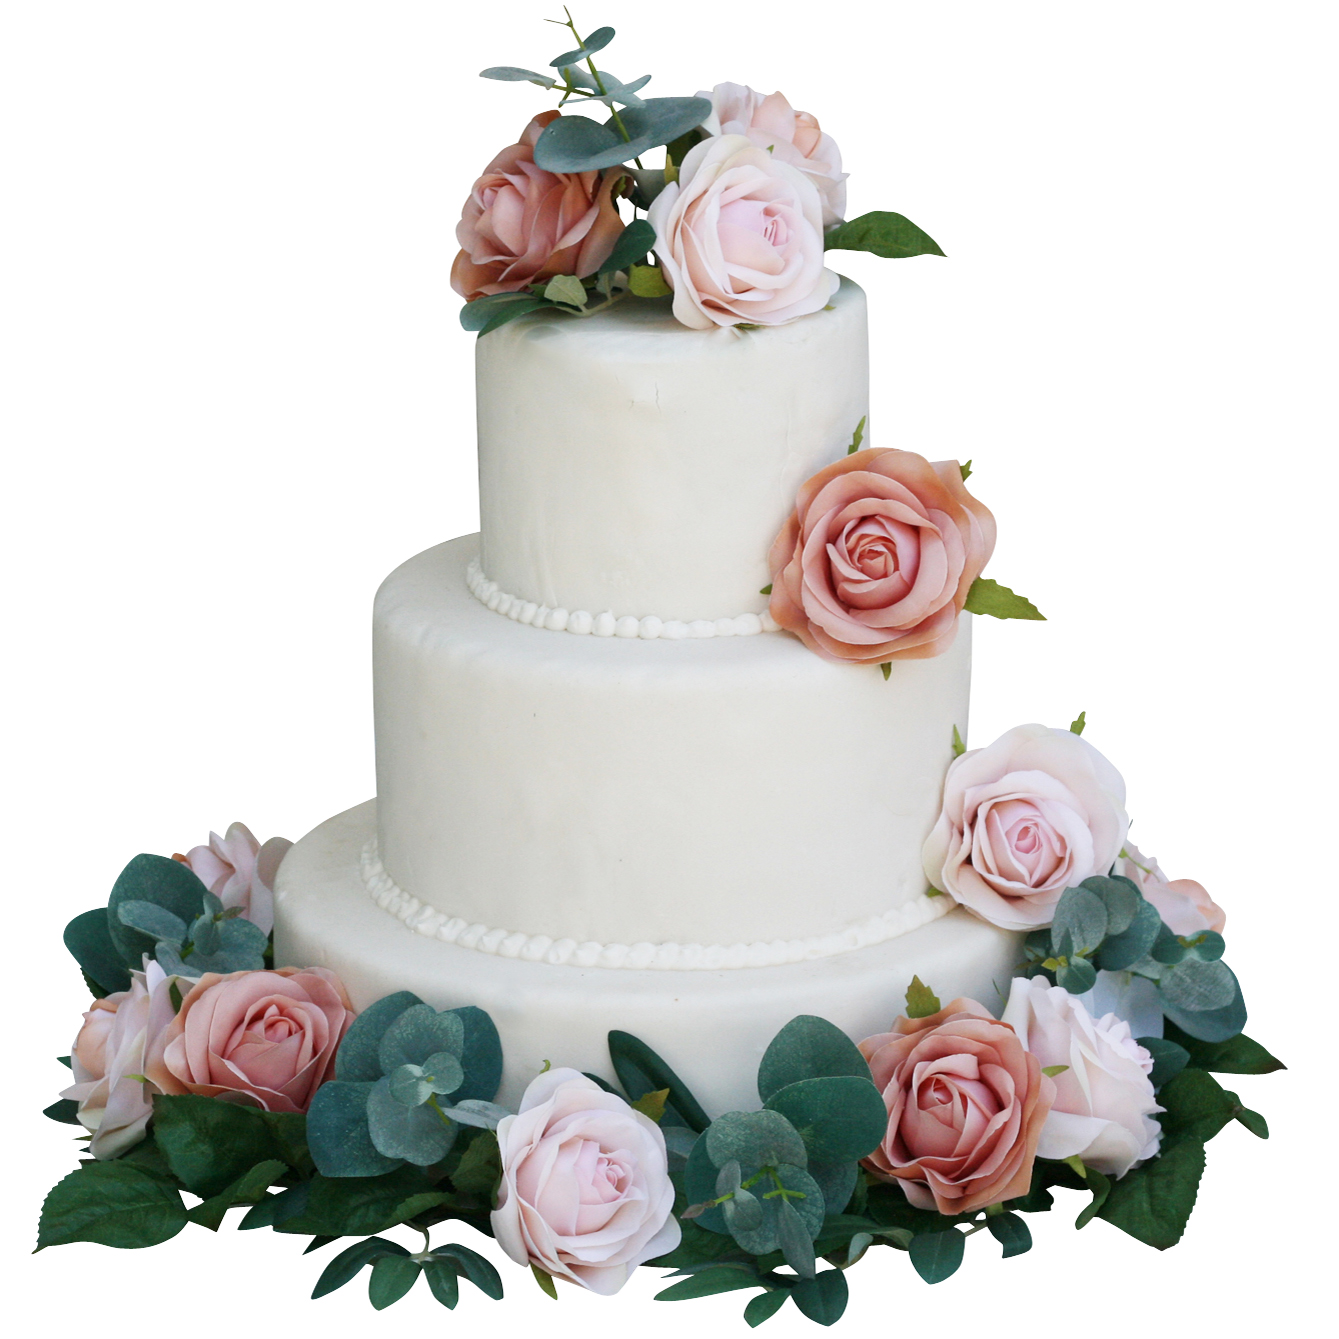 champagne-cake-flowers-silk-wedding-decor.jpg